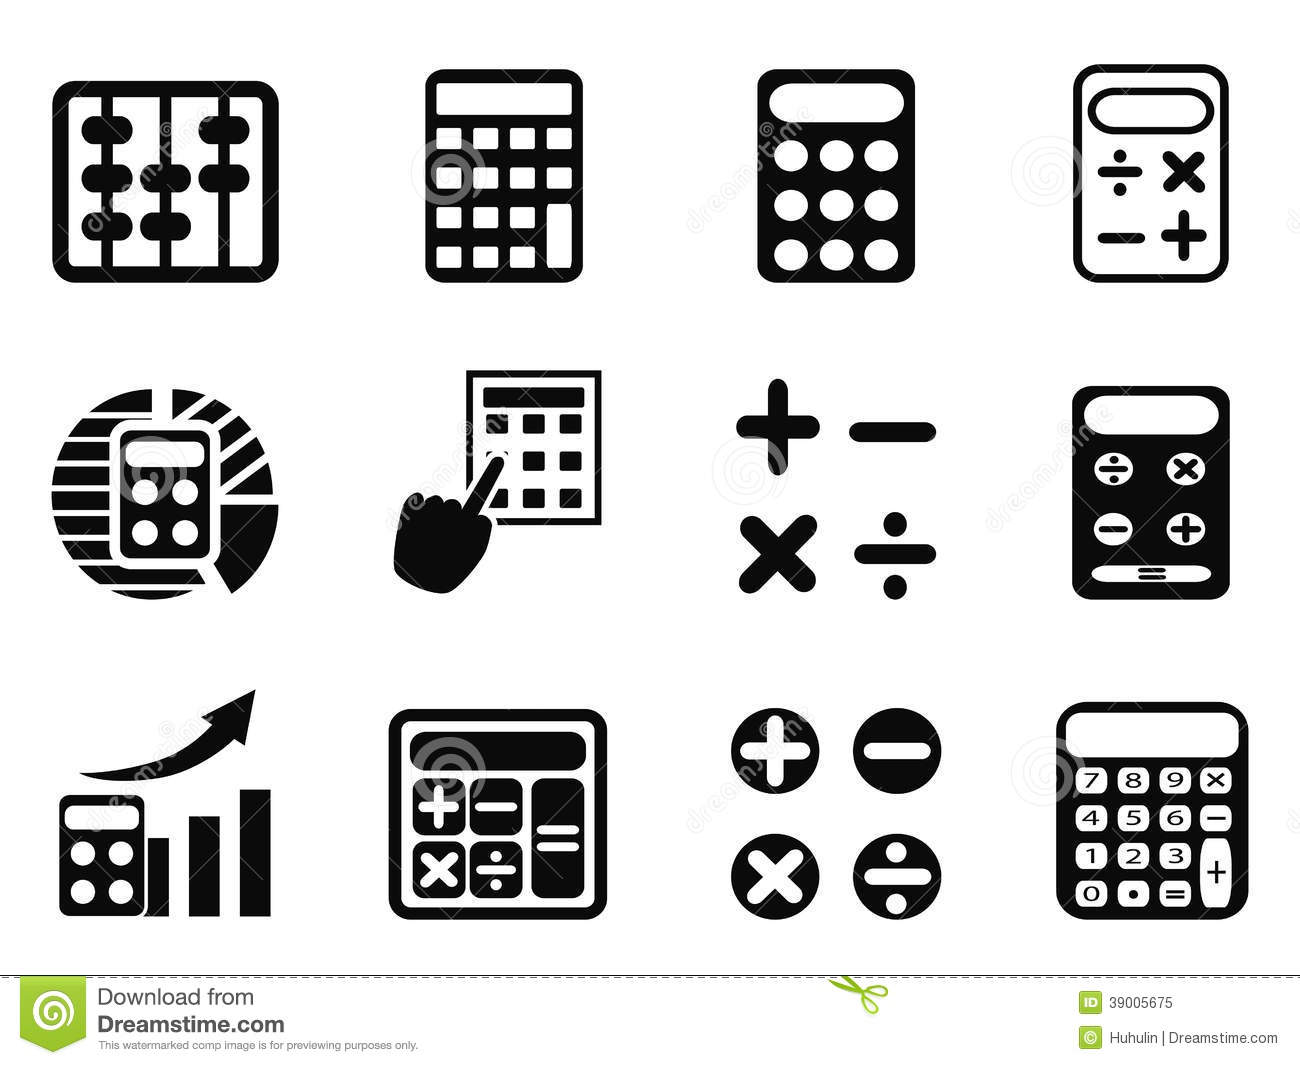 GasDelpg100 together with File Electron shell 019 Potassium furthermore Circuitikz Inductor Style moreover 771432360376795137 likewise Stock Illustration Lightning Bolt Icons White Background Black Vector Illustration Image67643162. on electrical element